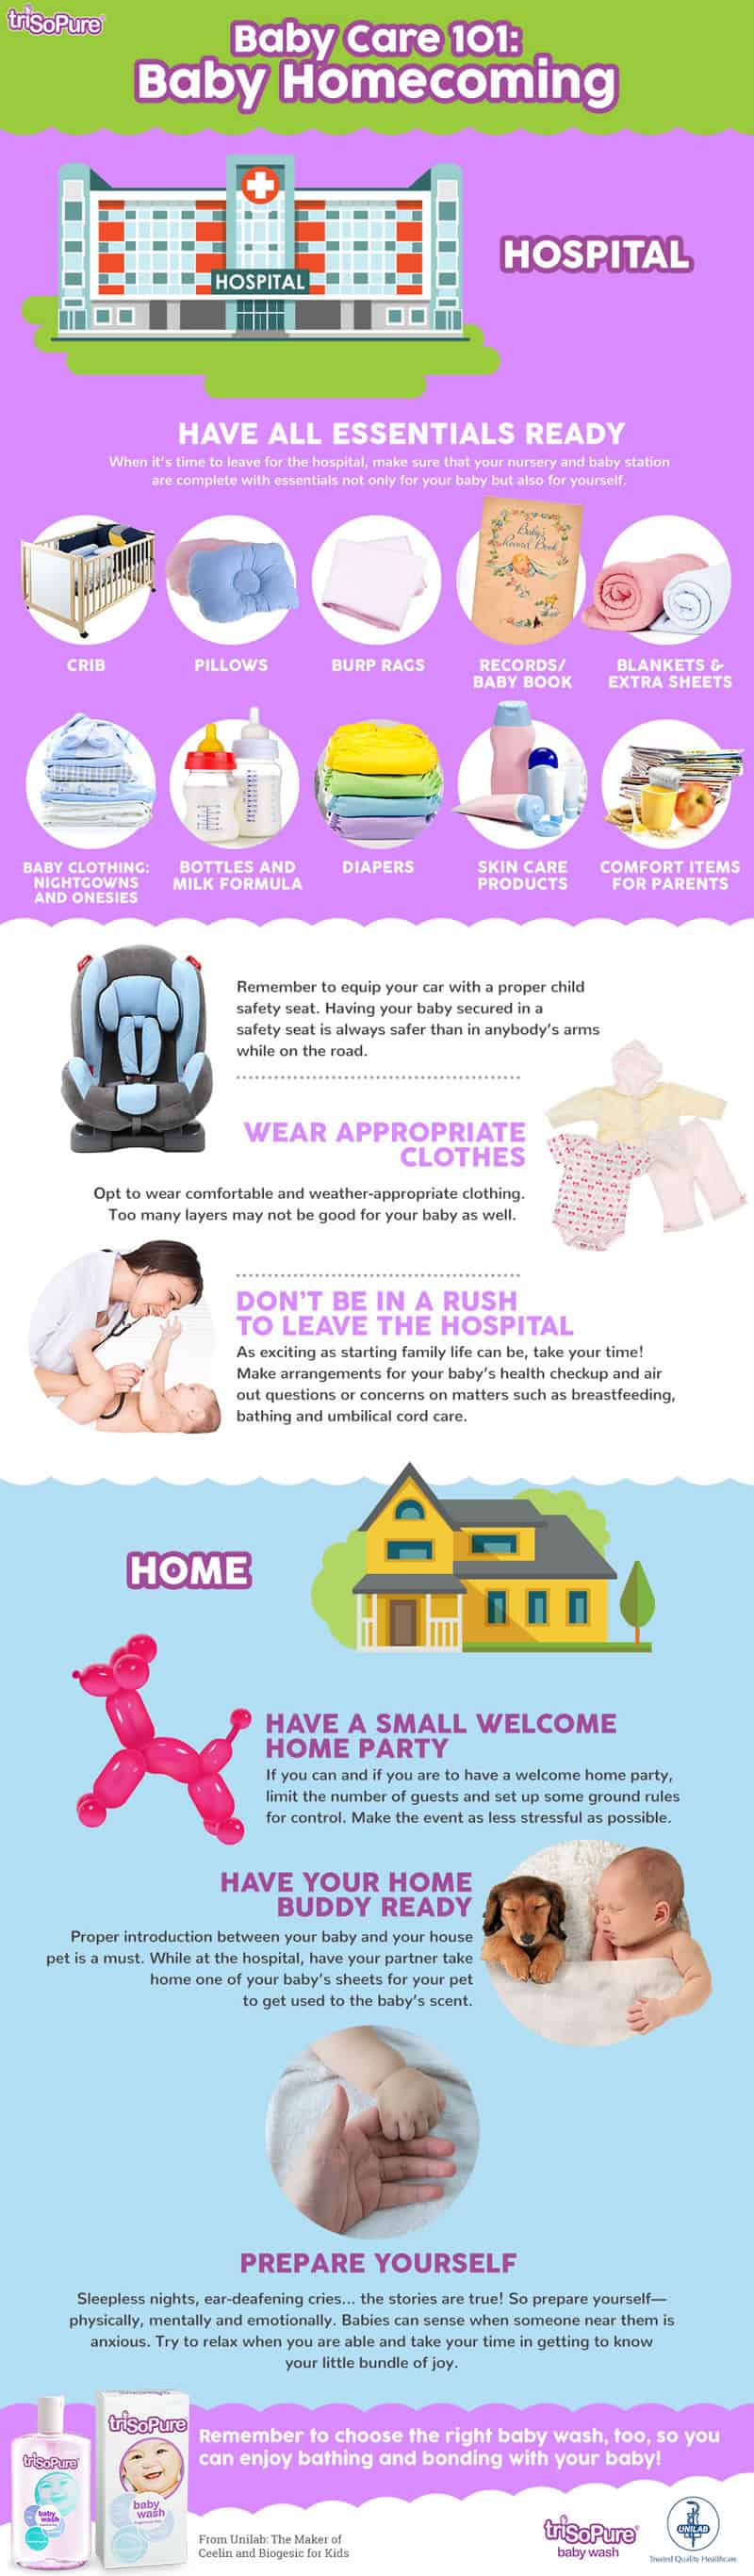 How to prepare baby Home Coming